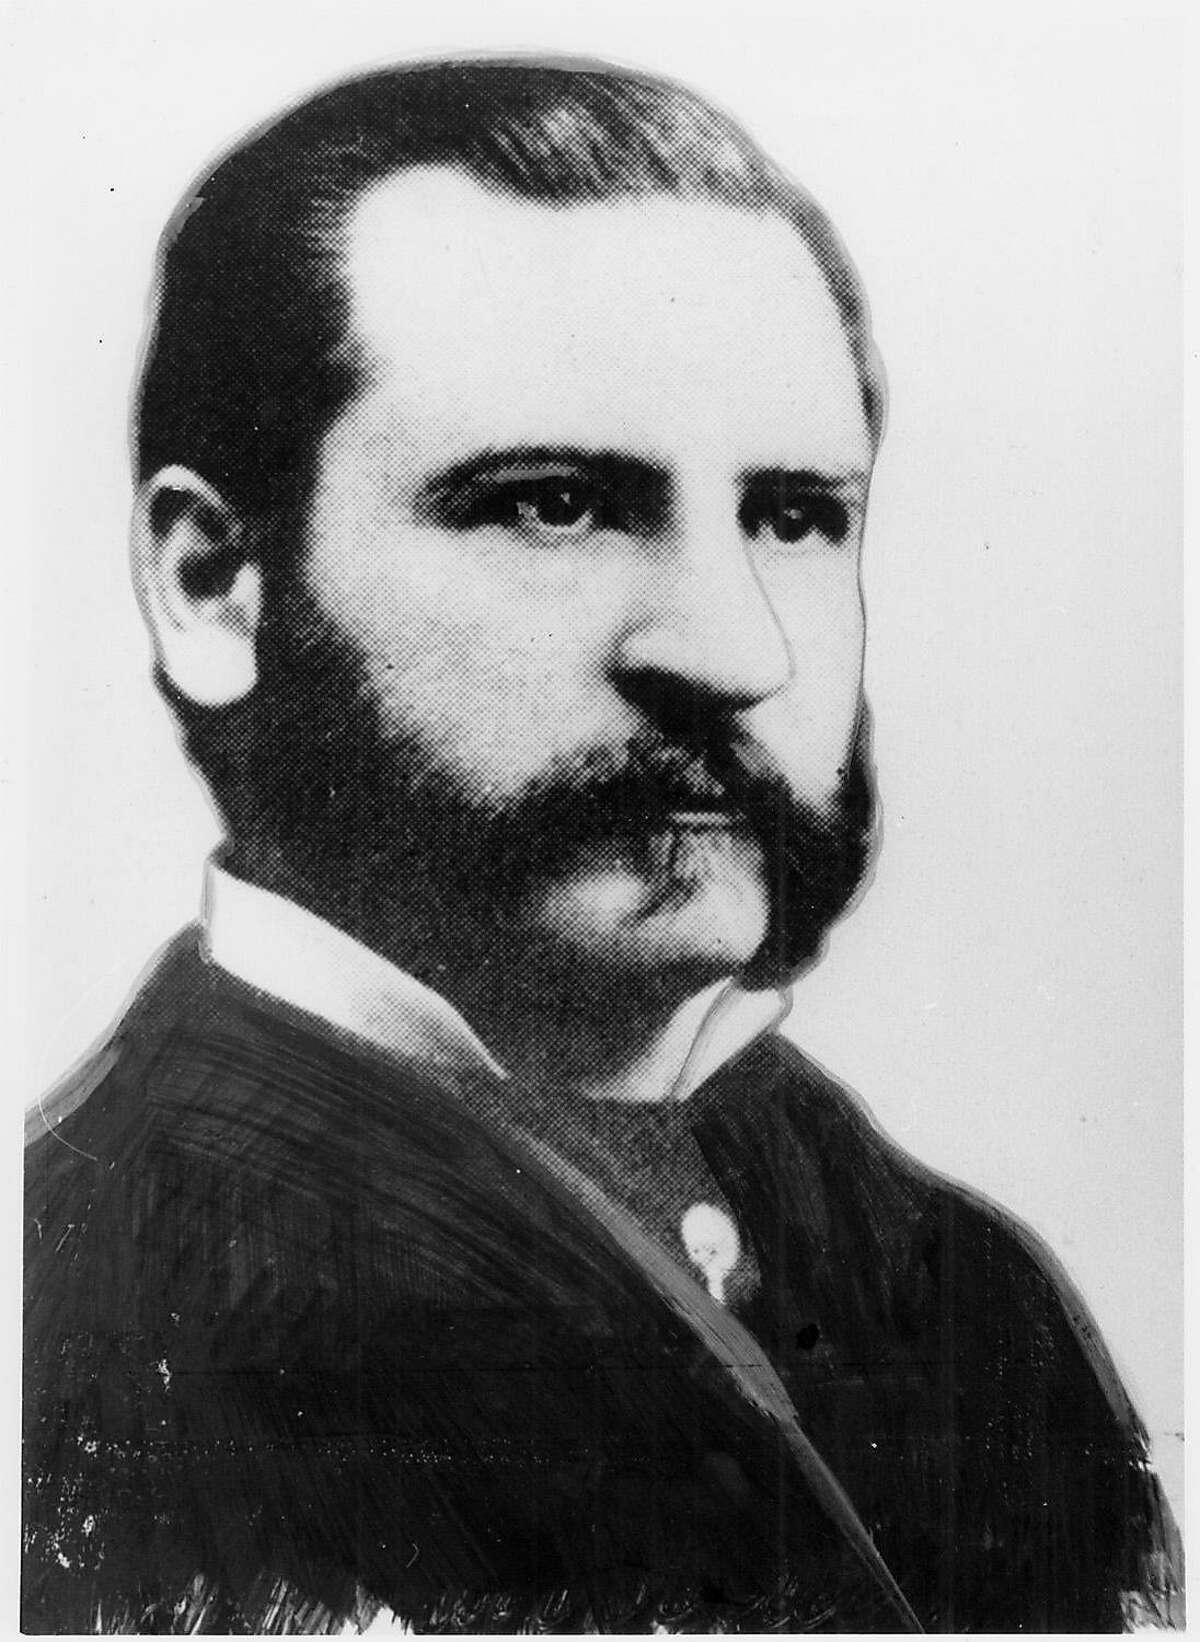 Chronicle co-founder Charles de Young was killed by an assassin in 1880.